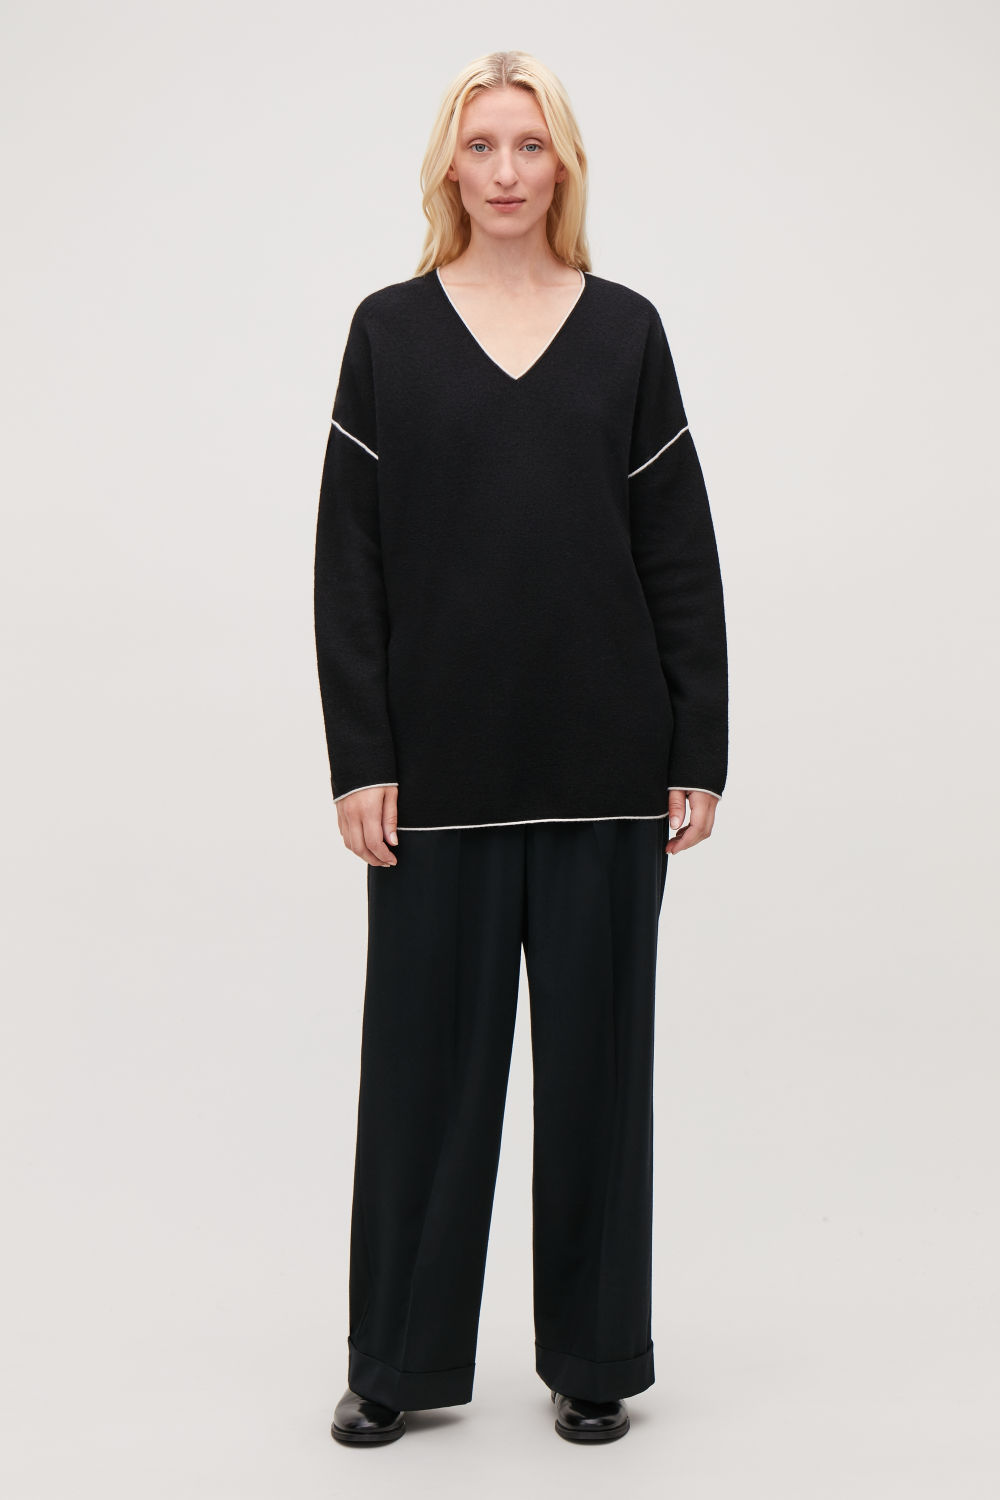 코스 COS MERINO JUMPER WITH CONTRAST EDGE,Black \/ white